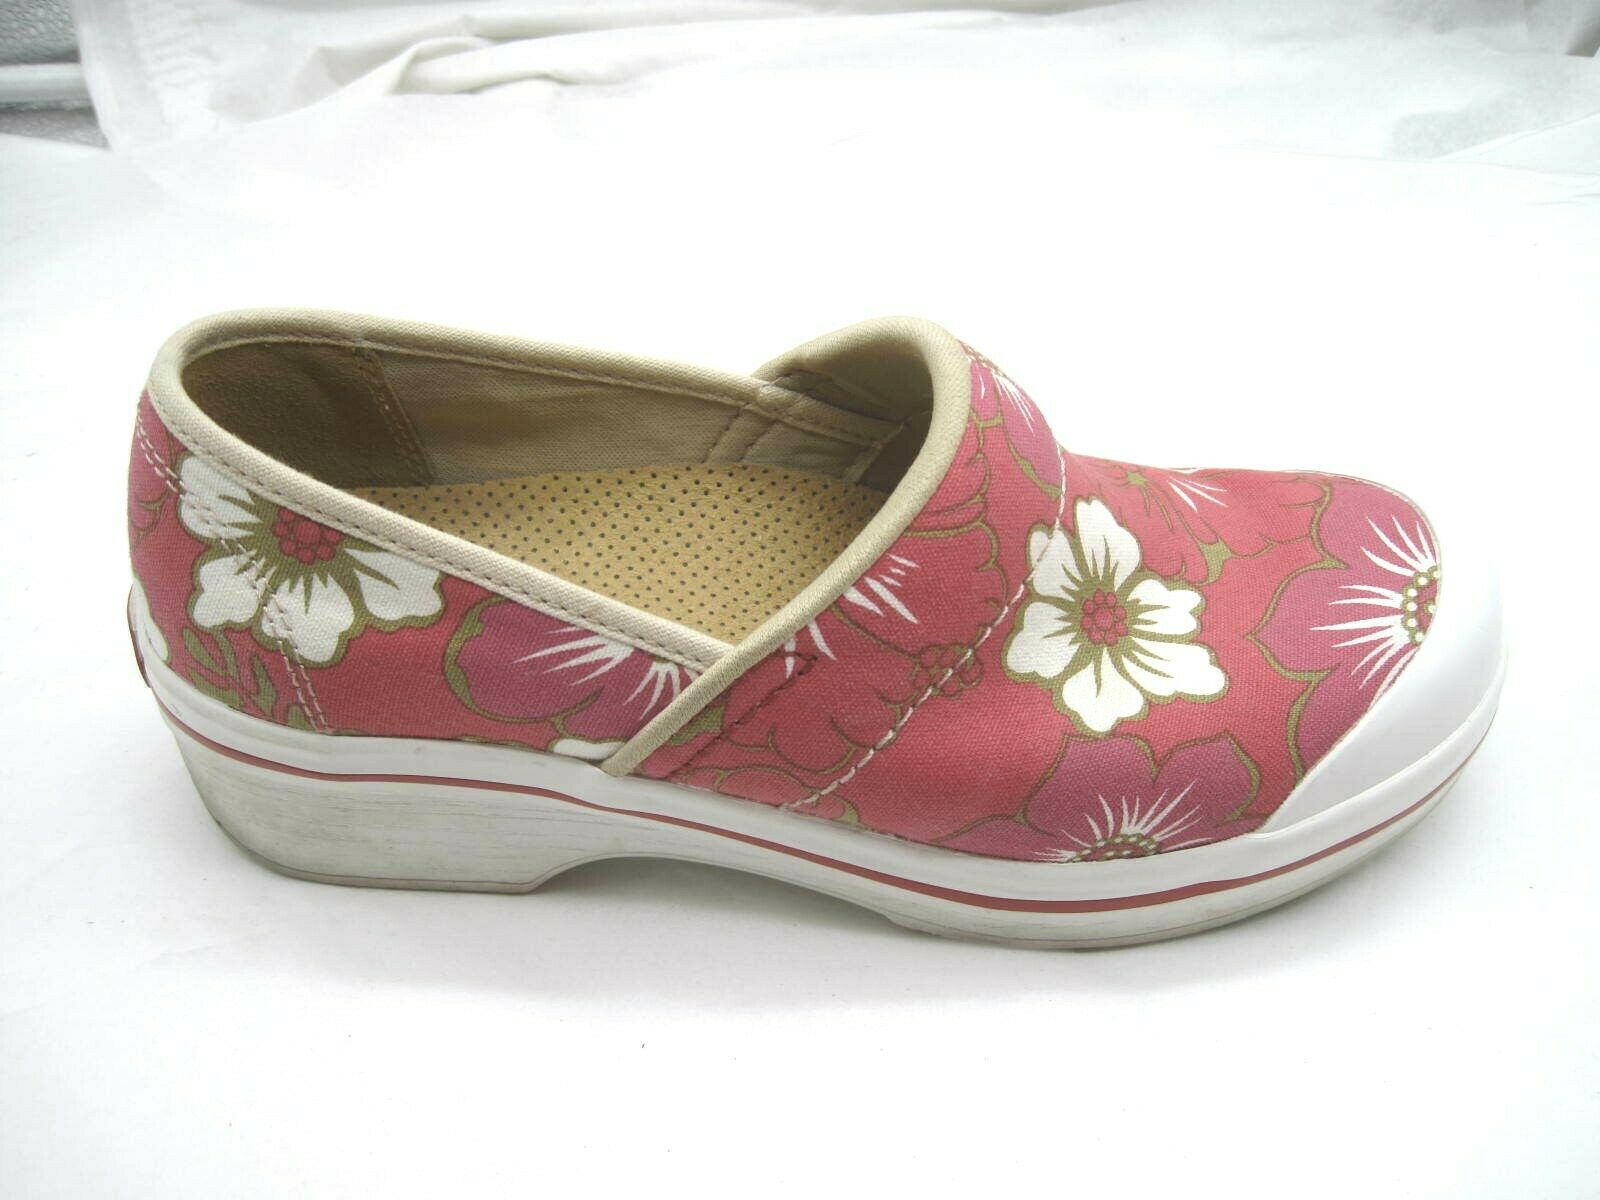 Dansko size 37 6M red floral clogs womens ladies flats loafers shoes 6600960100